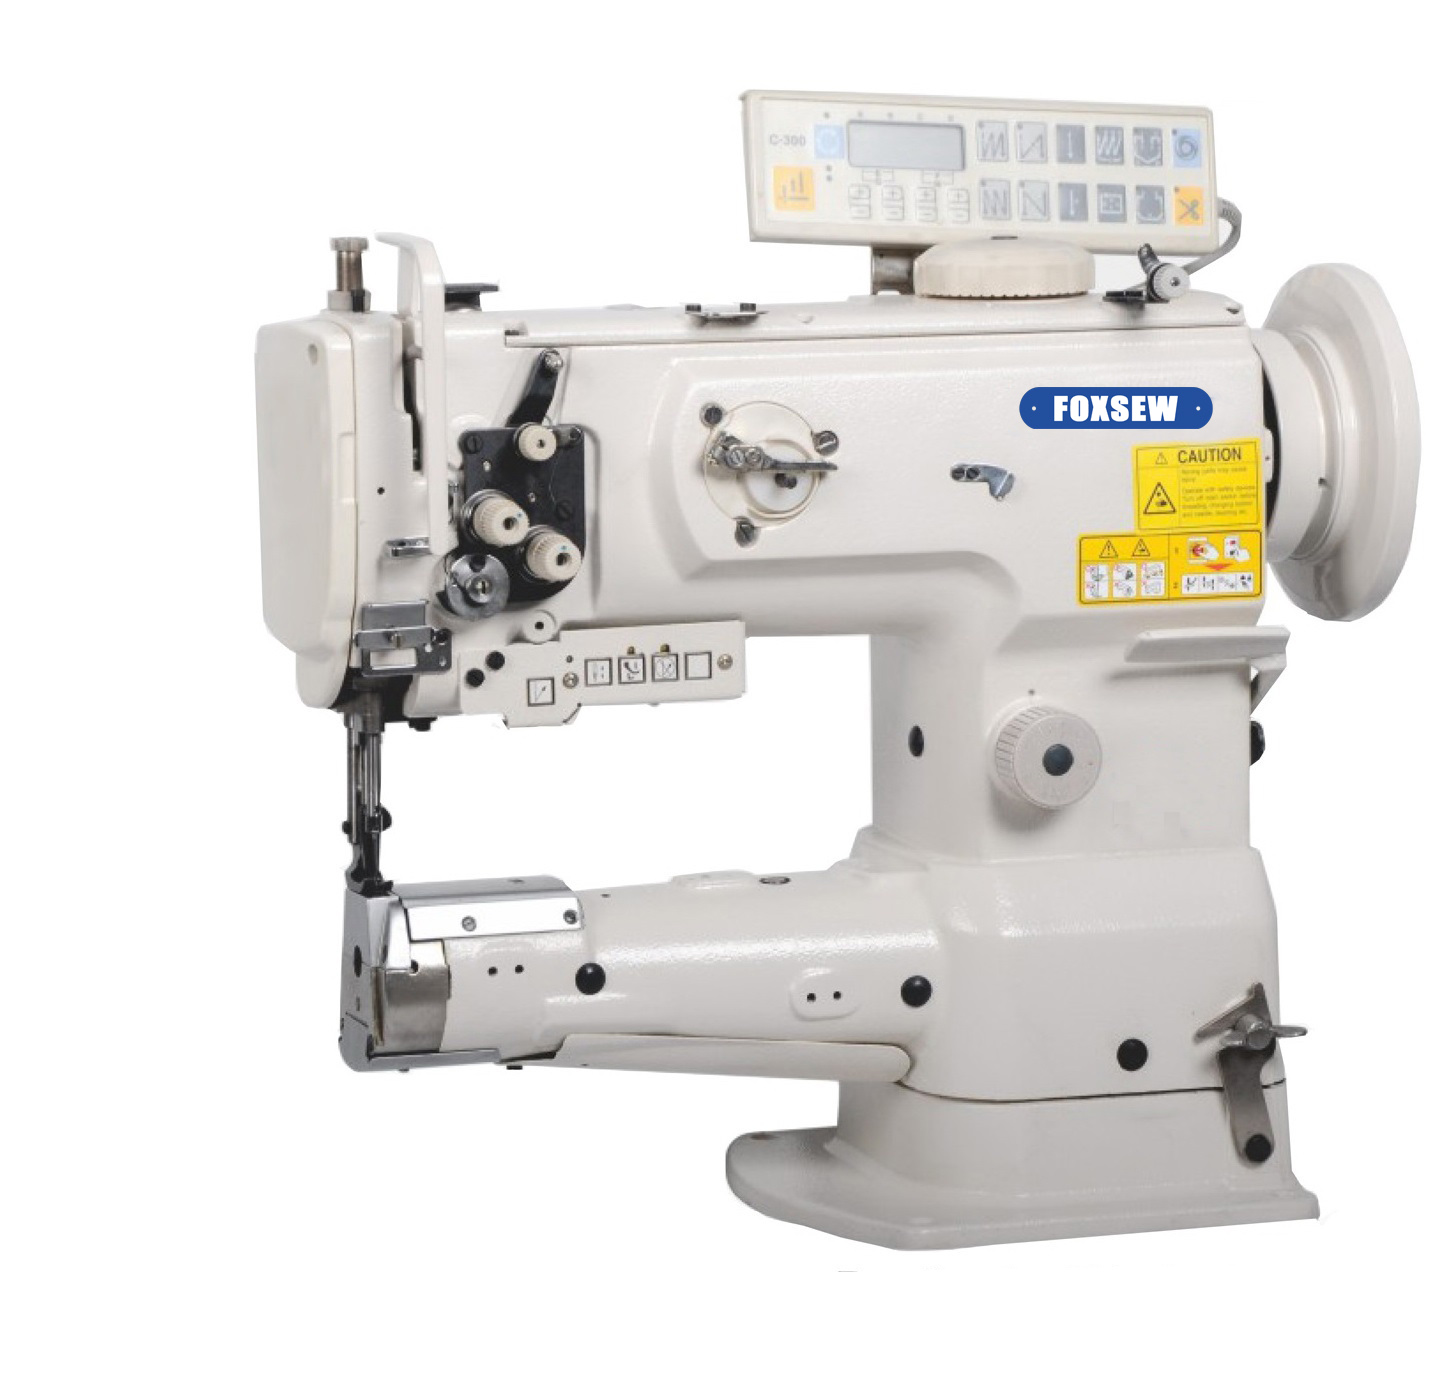 KD-1341-7 Single Needle Cylinder Bed Unison Feed Lockstitch Sewing Machine with Automatic Thread Trimmer